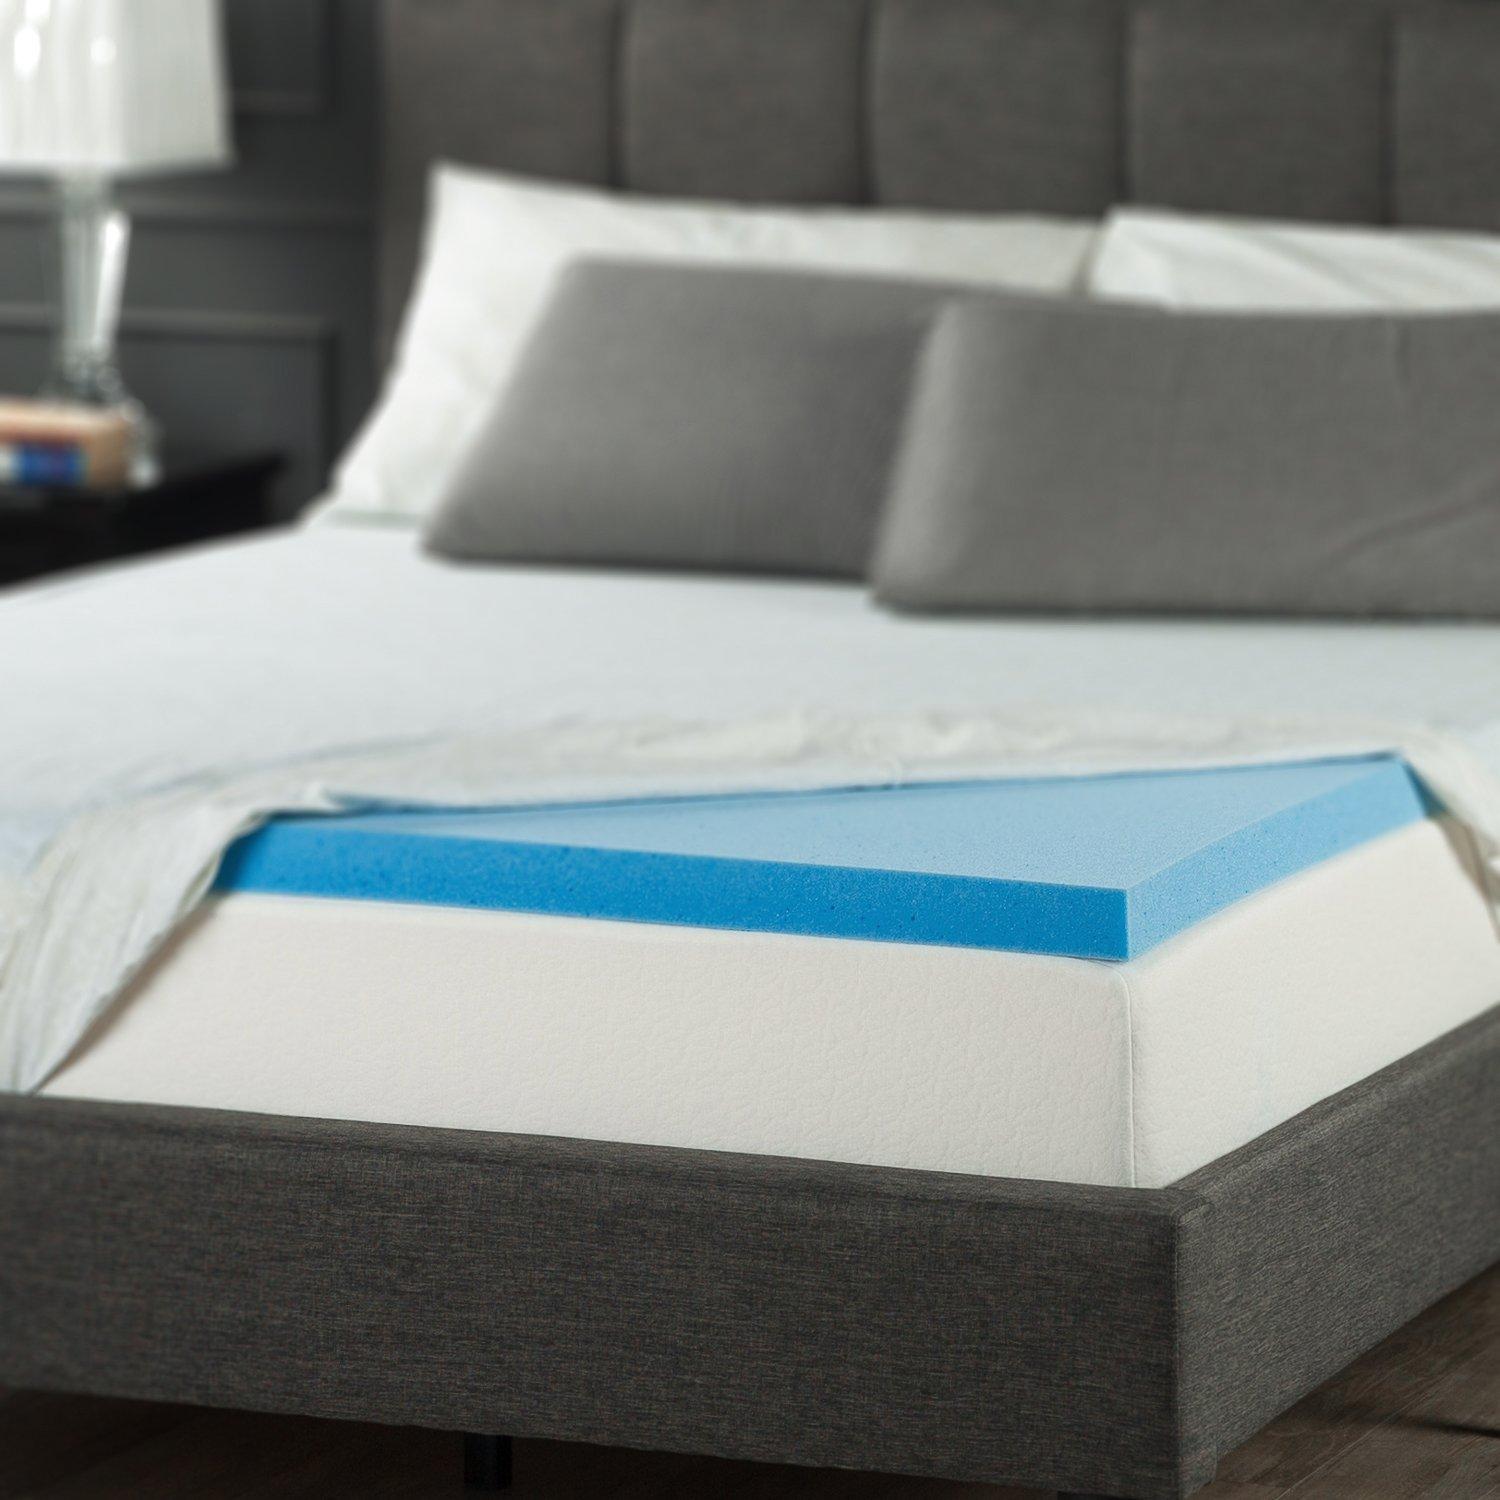 top double hypnos firm main at mattress superb johnlewis online com topper pillow buyhypnos pdp rsp spring pocket